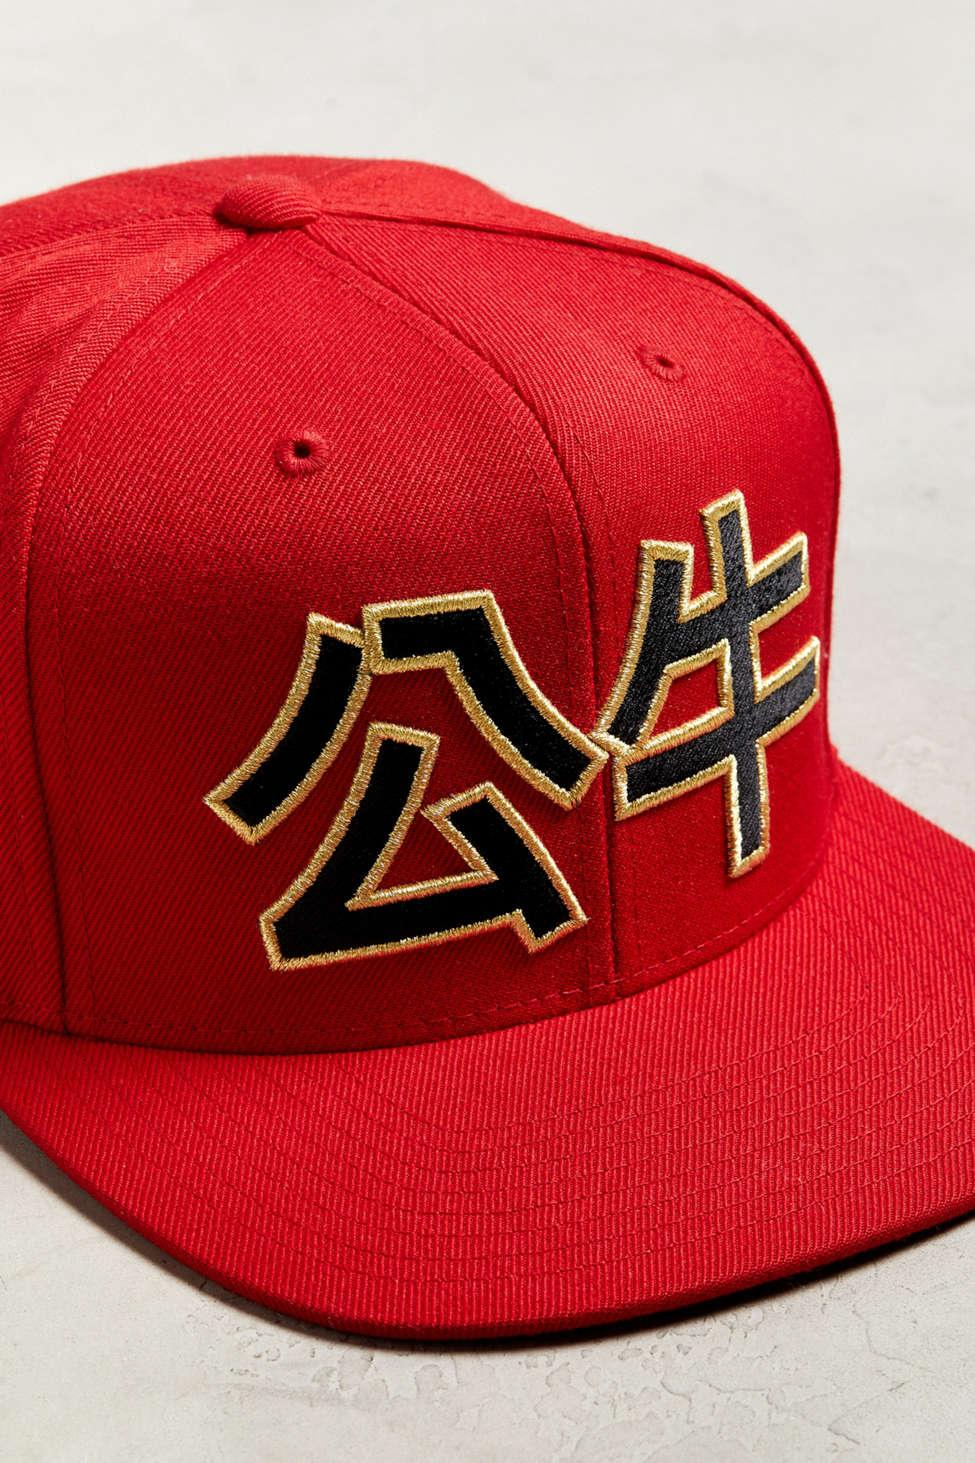 09e5fd55 Mitchell & Ness - Red Chinese New Year Chicago Bulls Snapback Hat for Men -  Lyst. View fullscreen